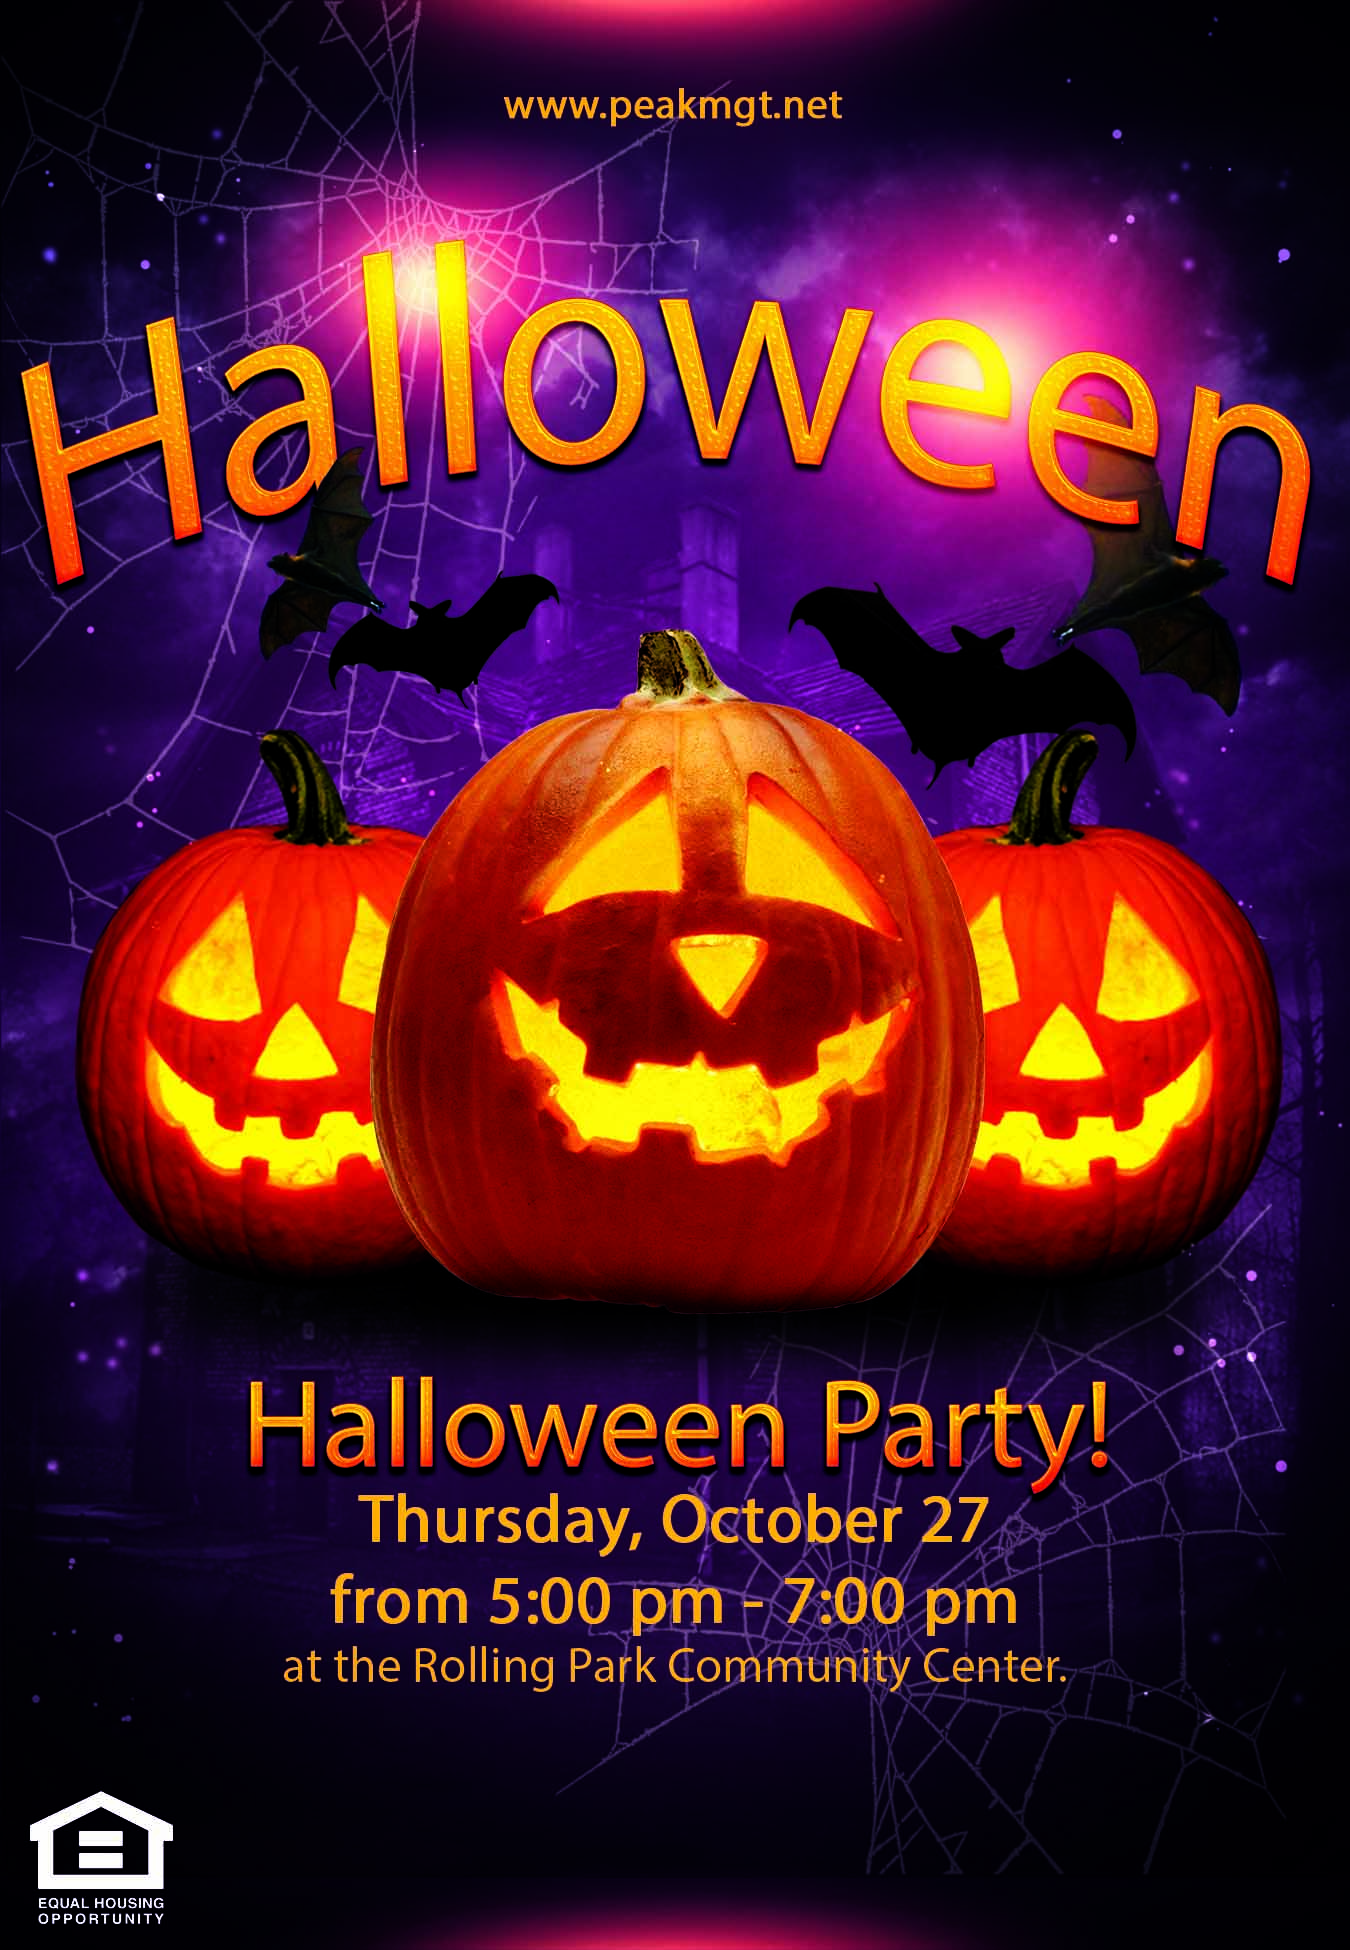 Rolling Park Apartments Halloween Party | Woodlawn, MD 21244